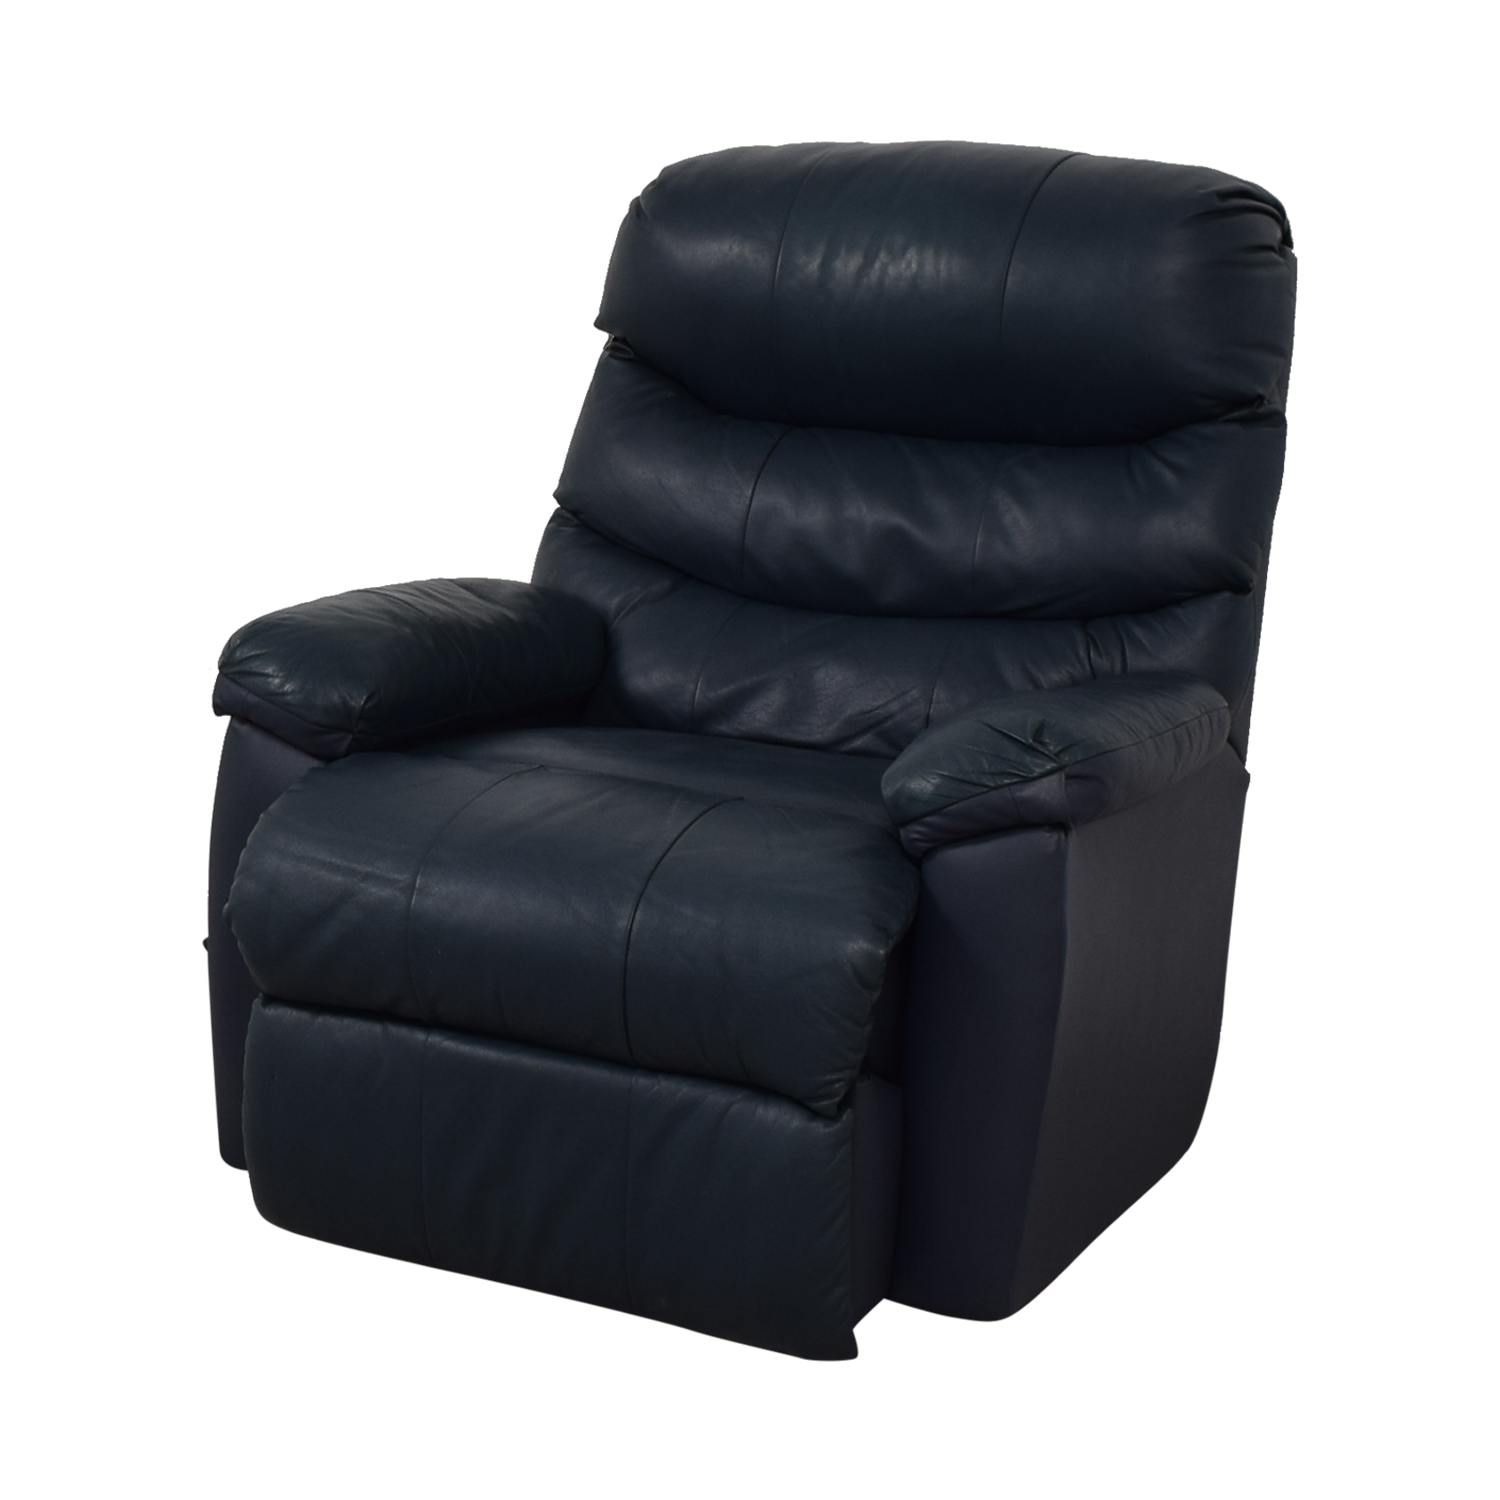 Action Industries Action Industries Recliner coupon